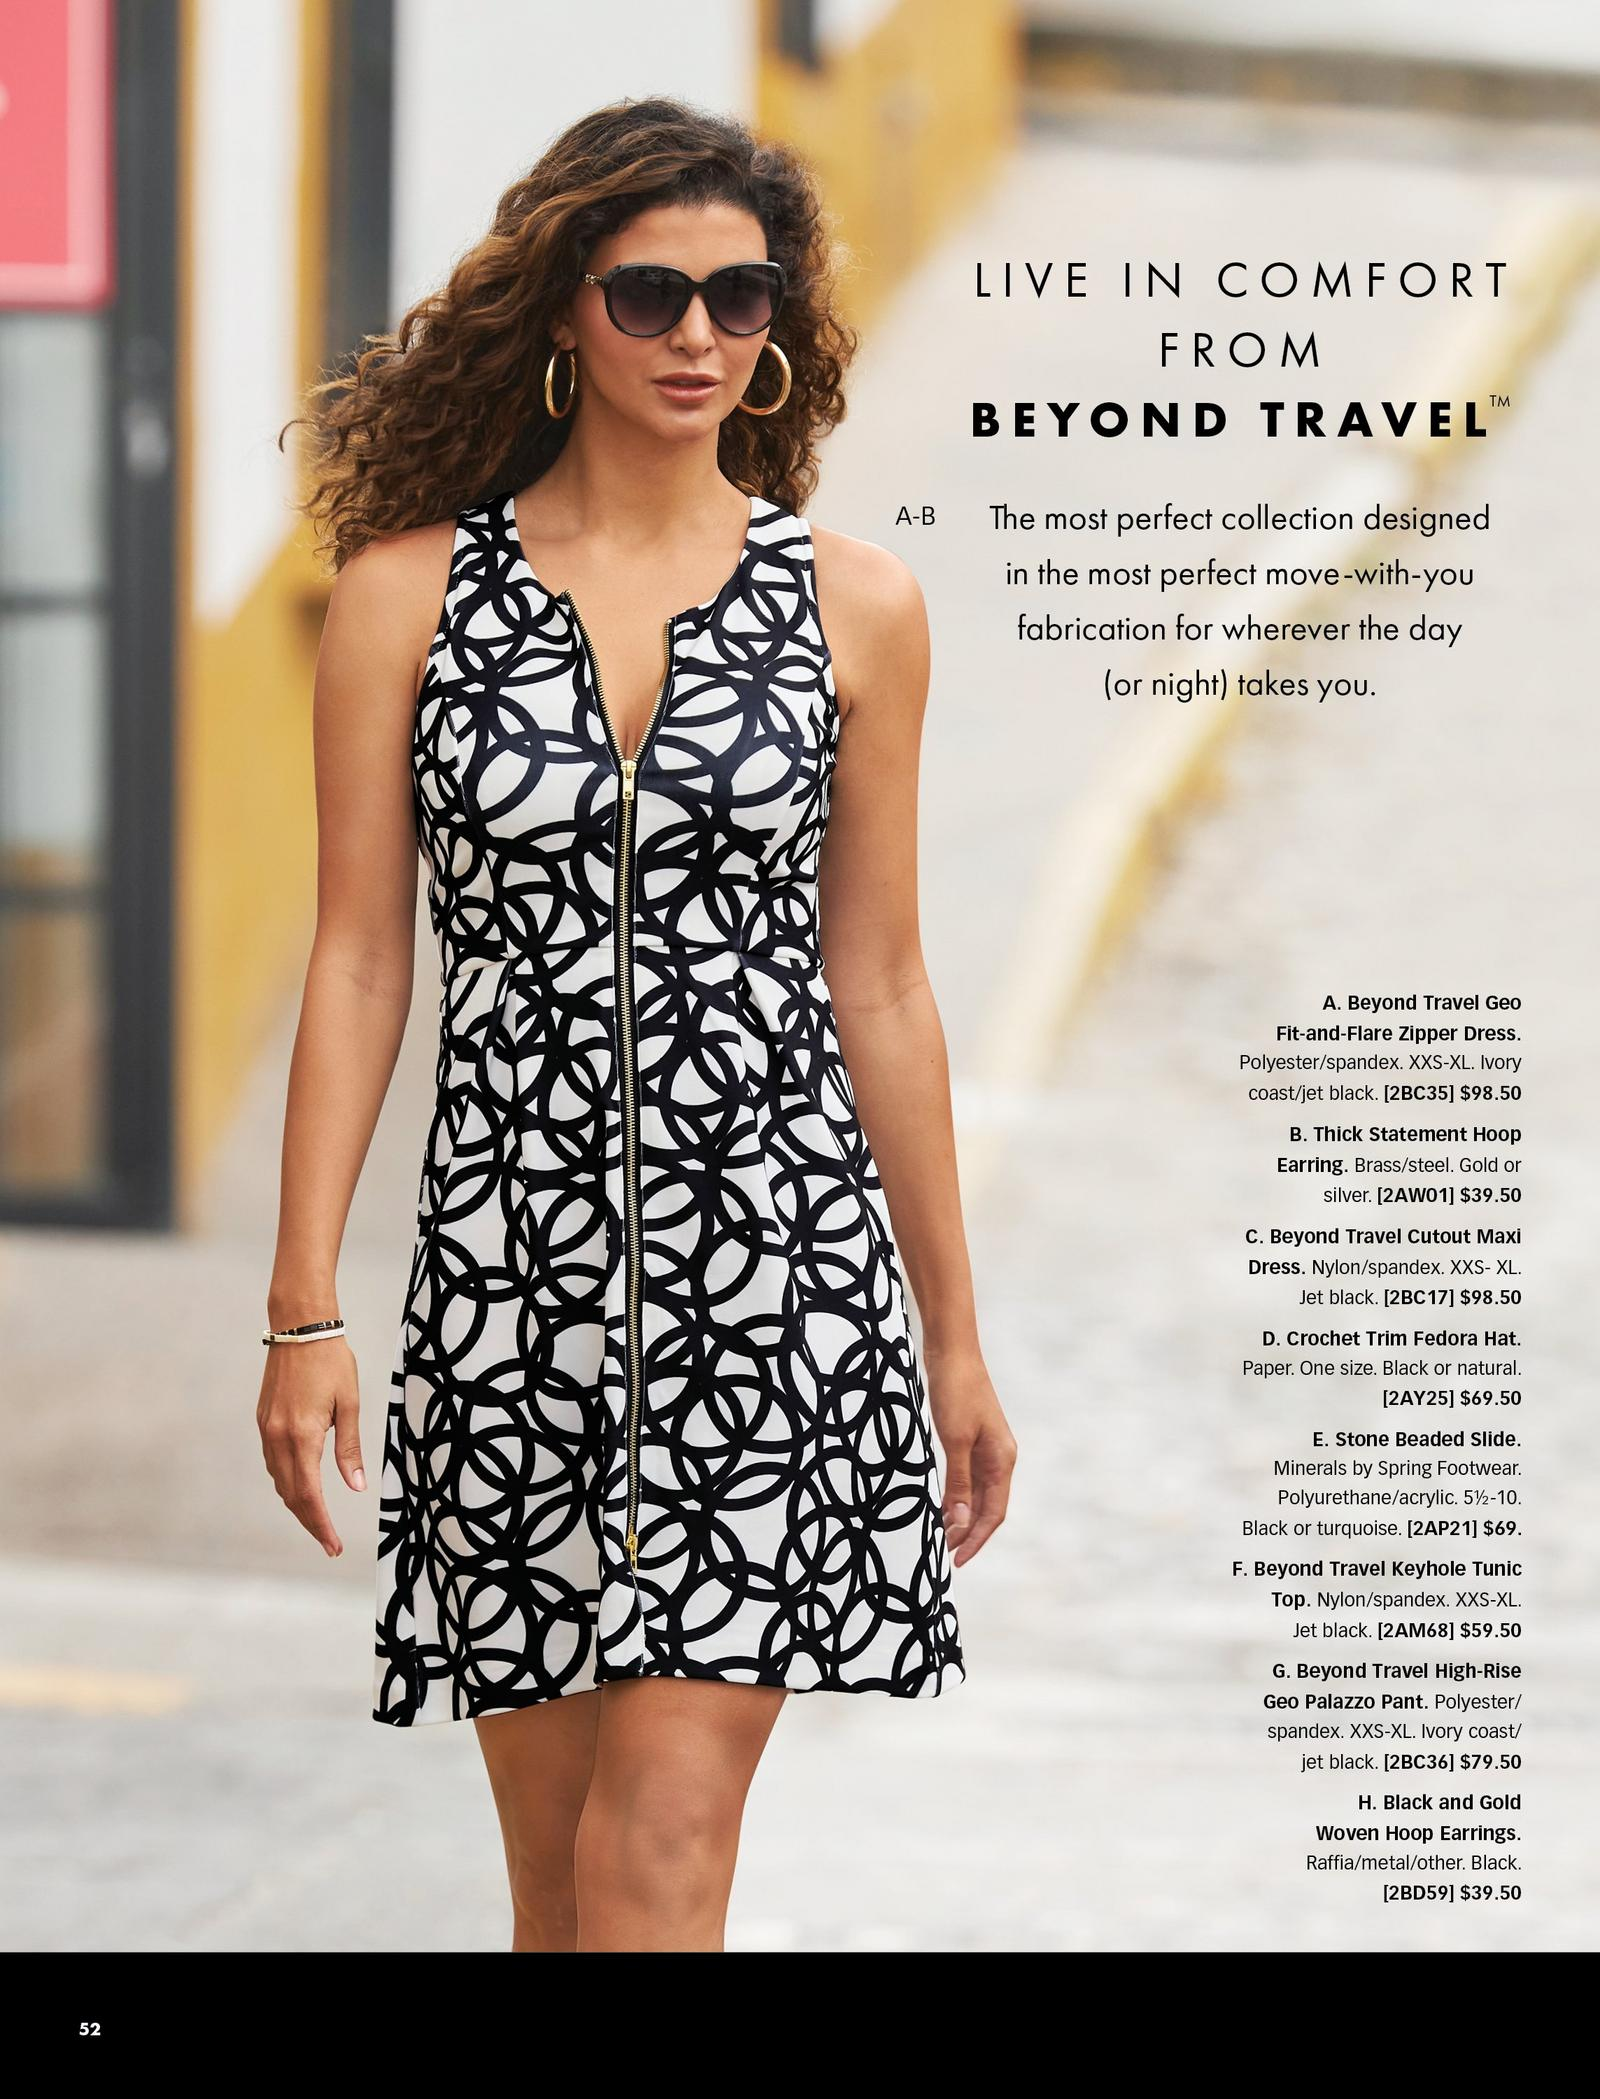 model wearing a black and white printed fit-and-flare zipper dress, gold hoop earrings, and sunglasses.